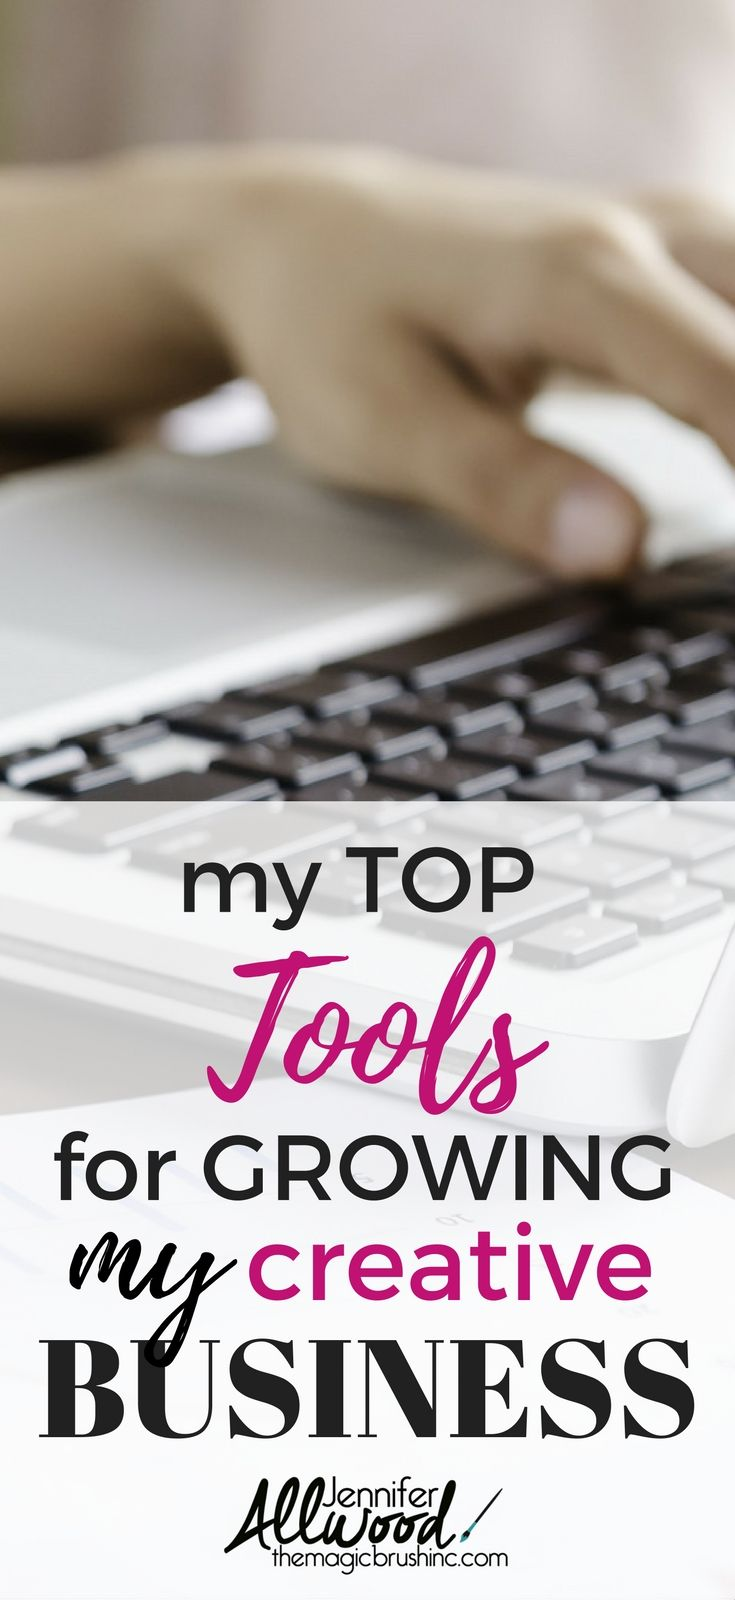 Jennifer Allwood's top tools, websites and services for growing a creative business and growing a blog. Jennifer owns theMagicBrushinc.com and successfully paints in her metro area, writes a blog and ebooks, sells DIY videos and mentorships programs and business trainings to creative entrepreneurs. Her tools will help you grown your business and make a profit. Blogging Tips